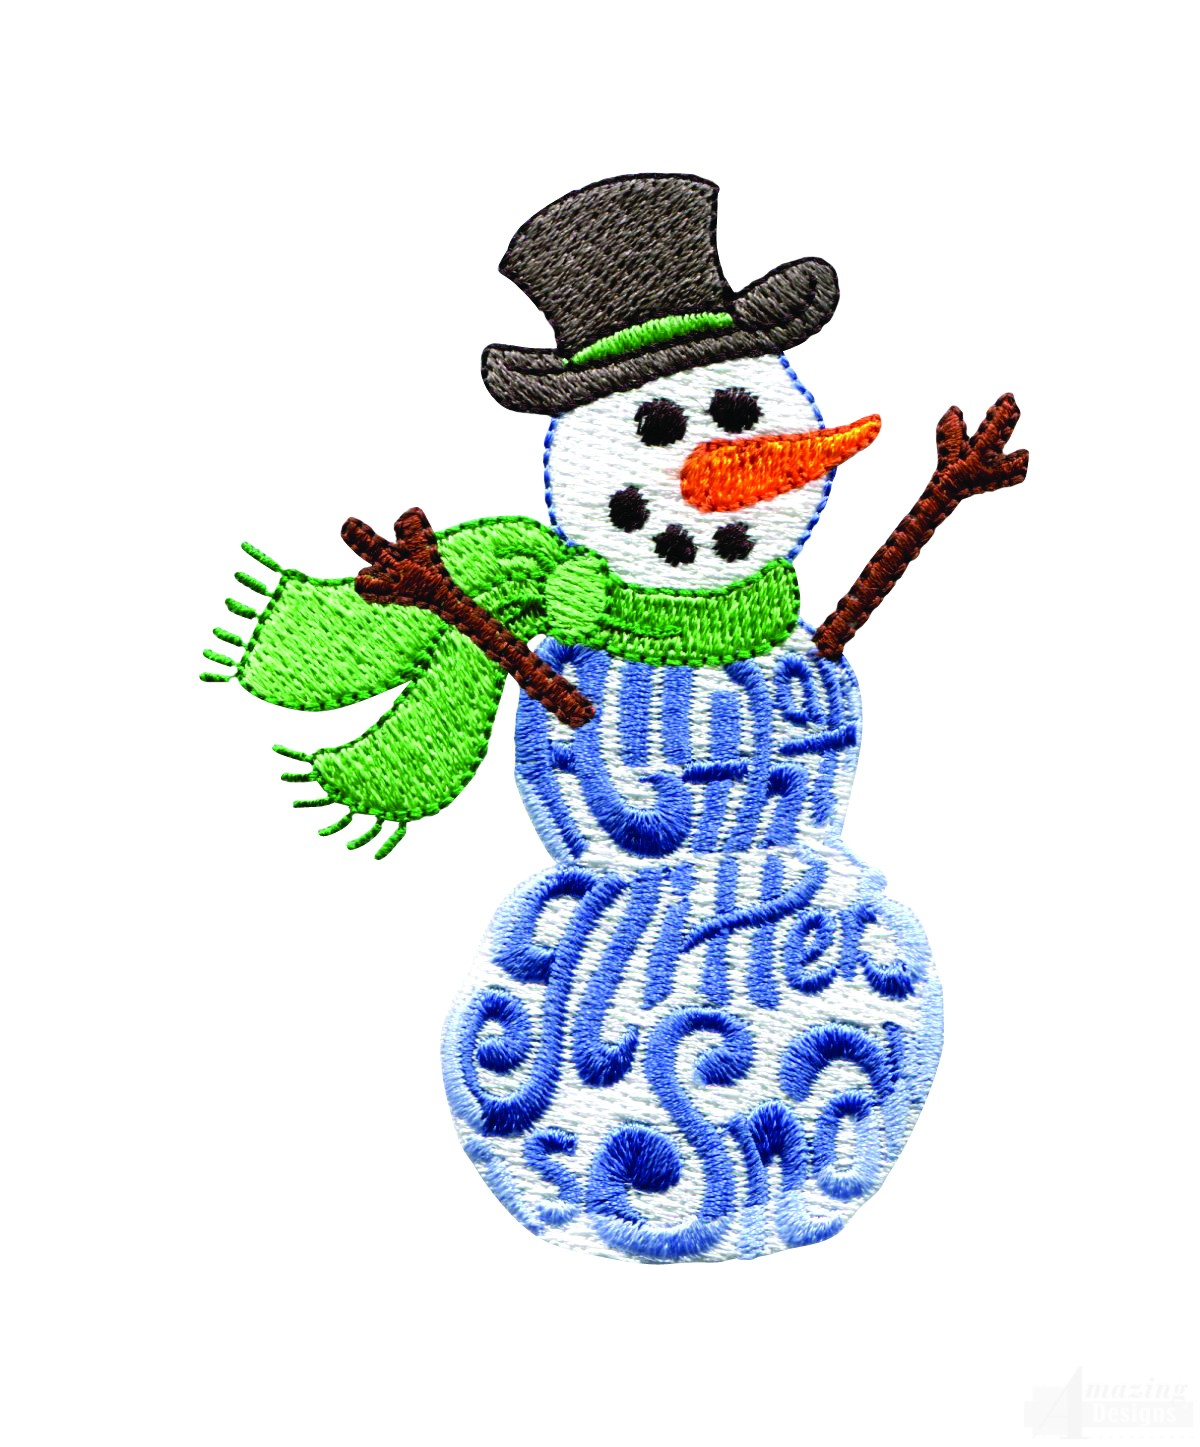 All that glitters snowman embroidery design